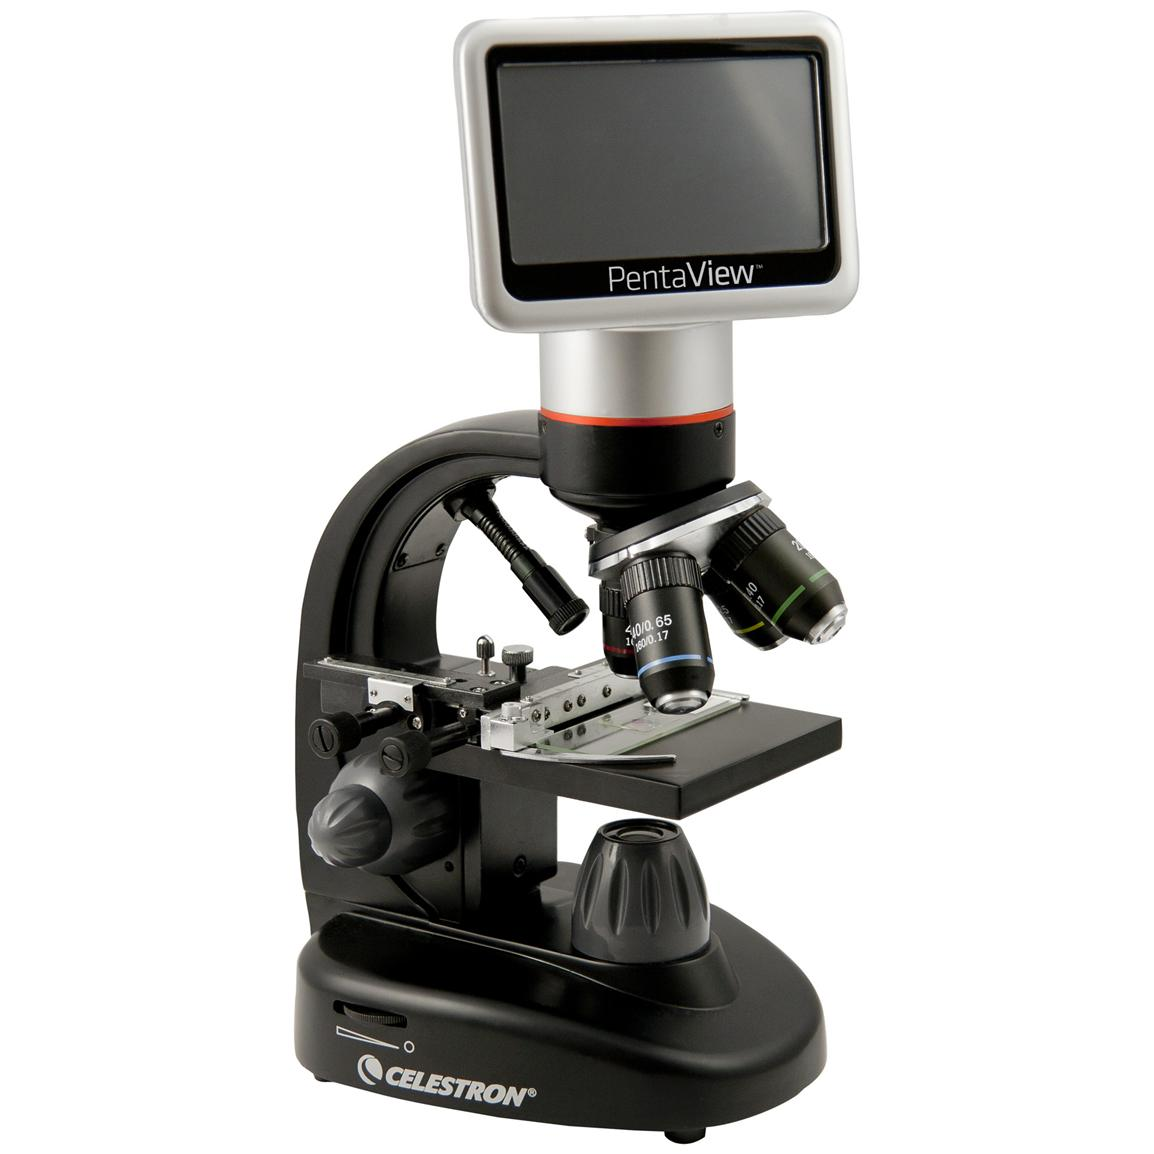 Celestron® PentaView LCD Digital Microscope